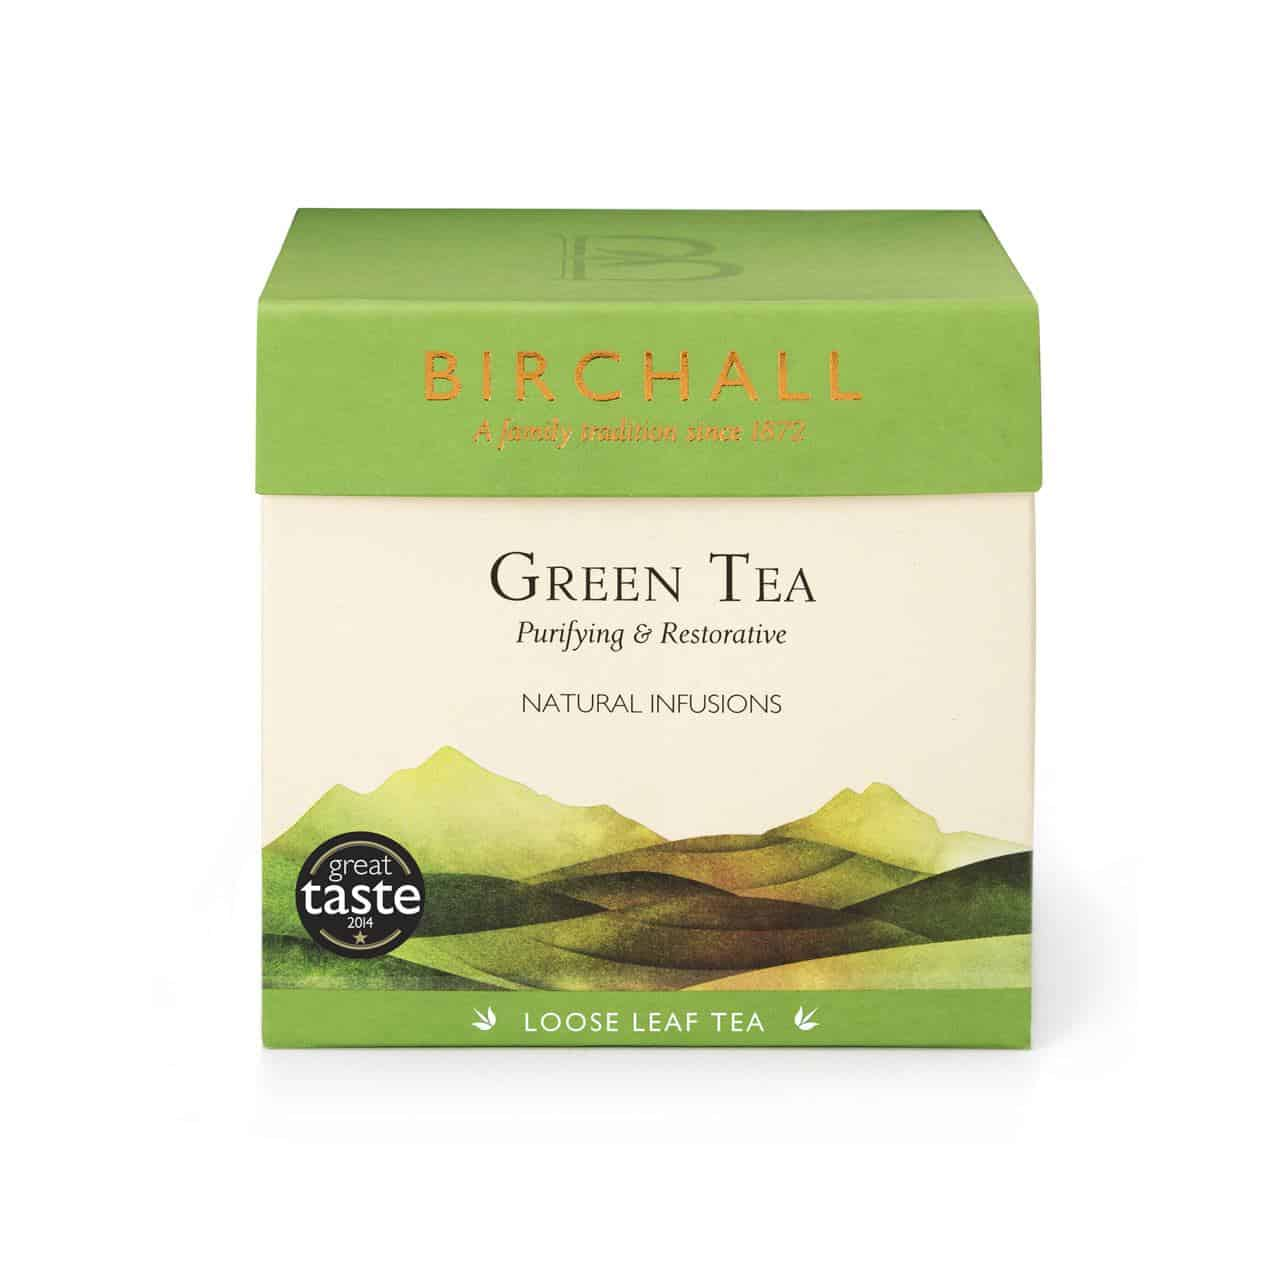 Birchall Green Tea - Loose Leaf Tea